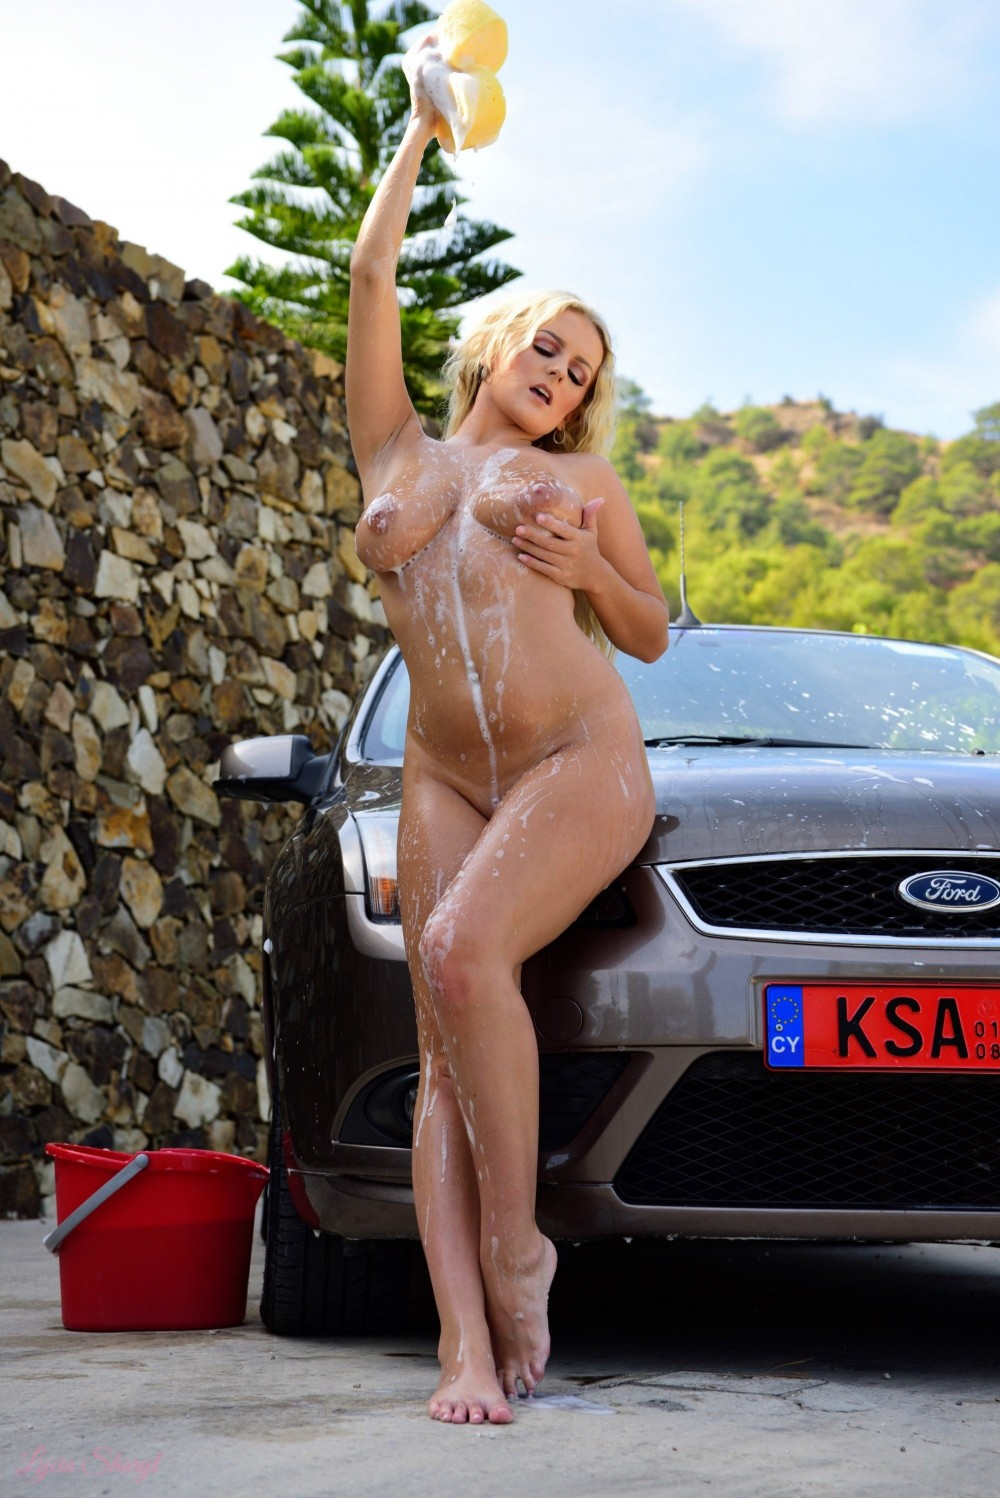 Car Wash Part 2